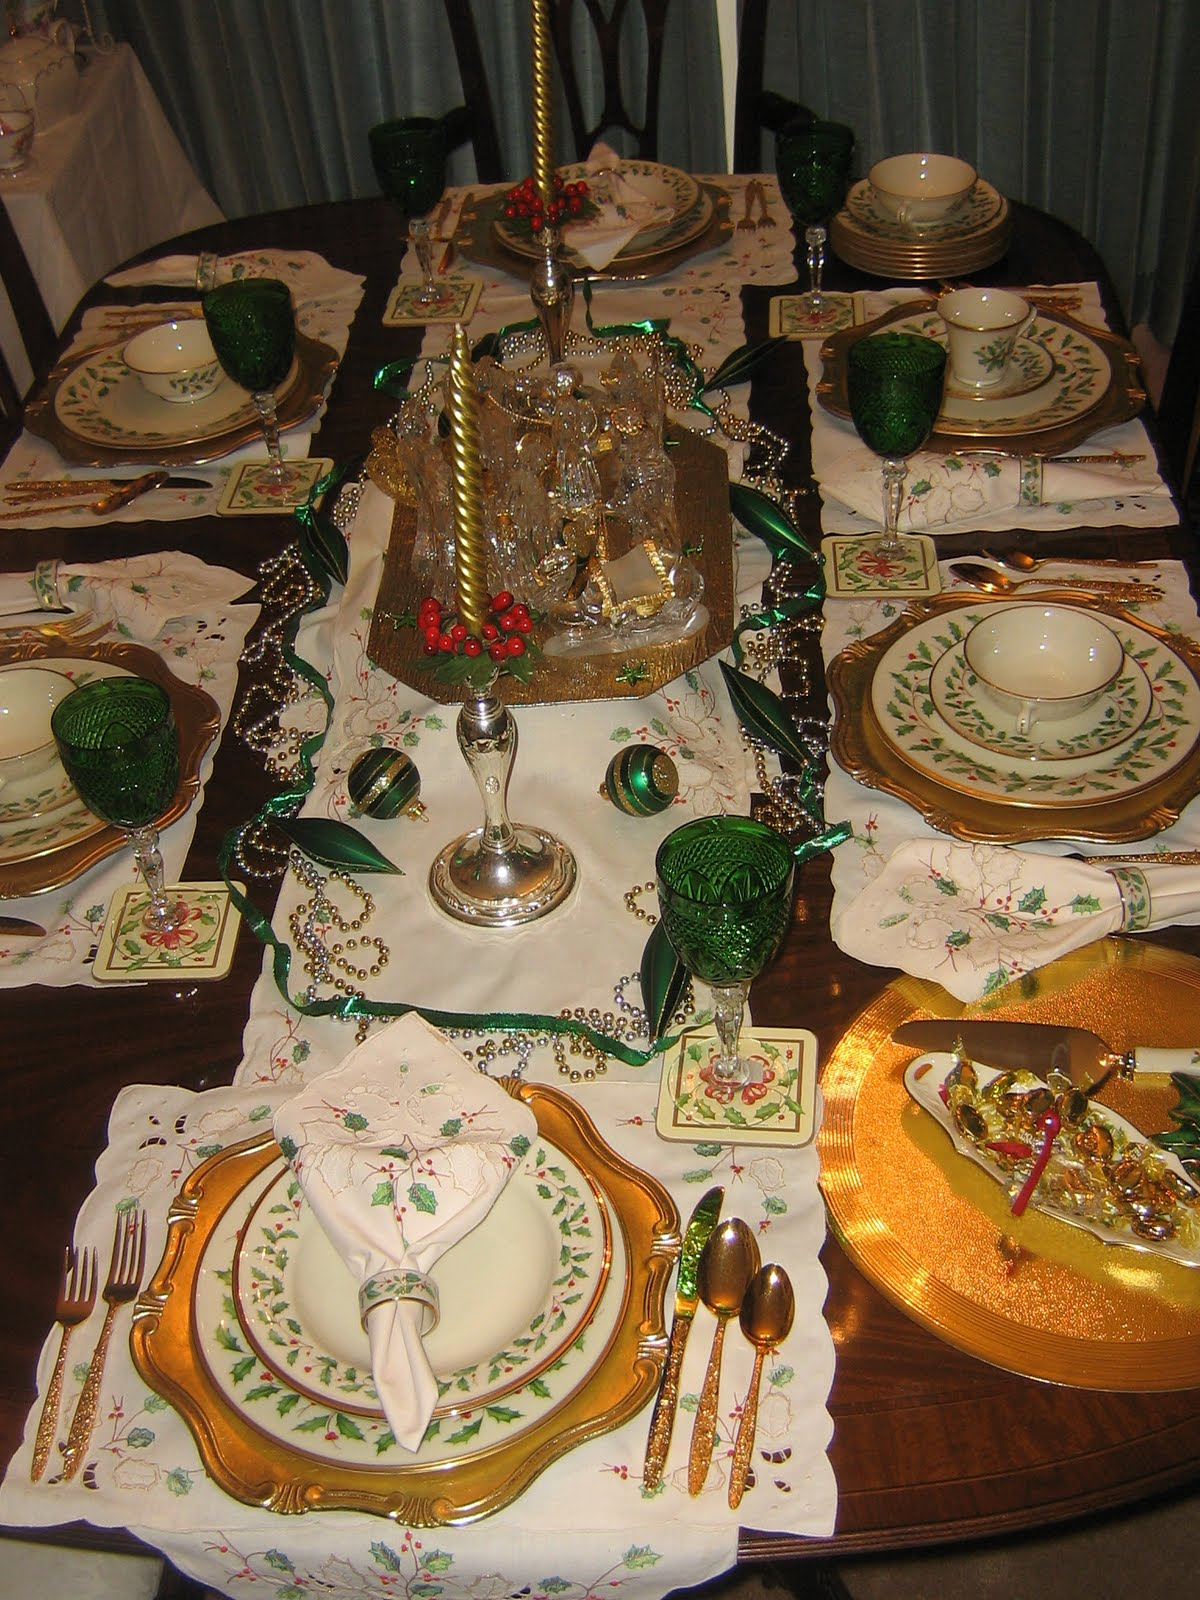 Oak rise cottage holiday tablesetting for Table 6 lenox